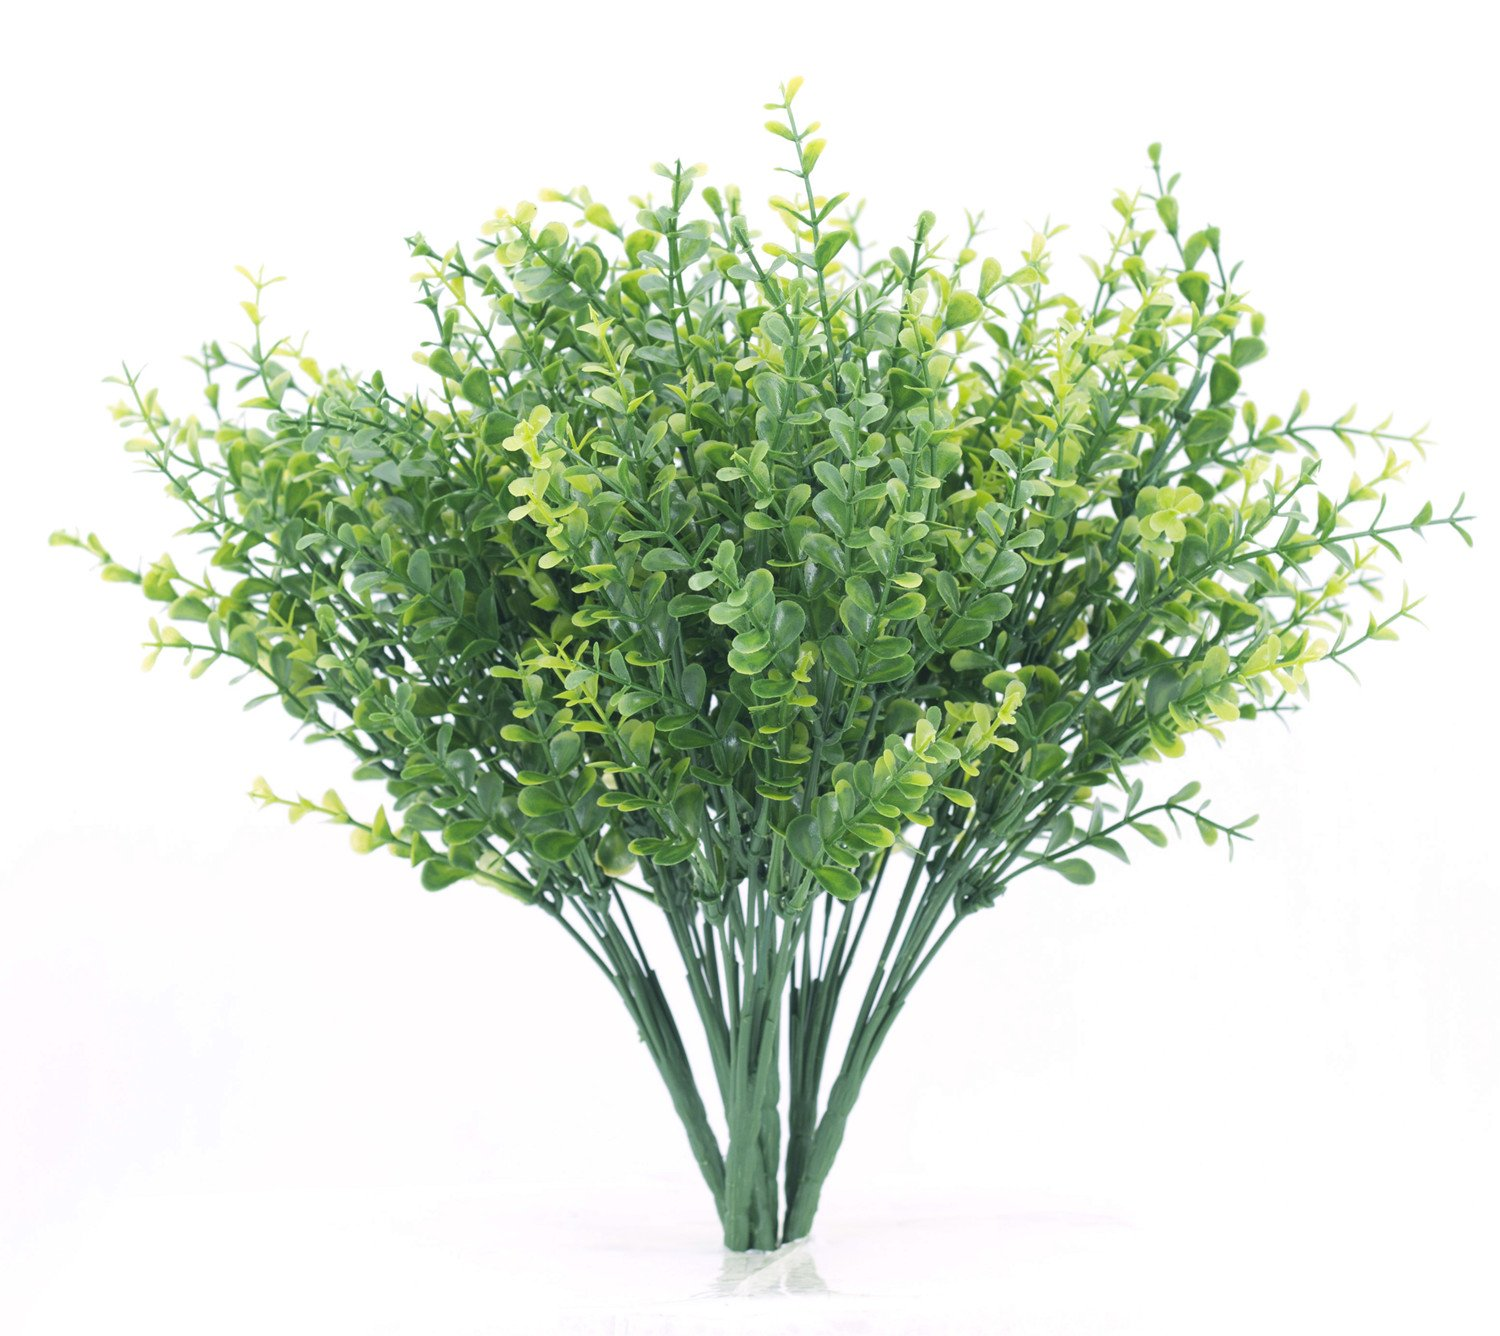 Artificial-Shrubs-Artificial-Plant-Eucalyptus-Leave-Fake-Plastic-Greenery-Plants-Eucalyptus-Leaves-for-Wedding-Garden-FarmhouseoutdoorOffice-Verandah-Decoration